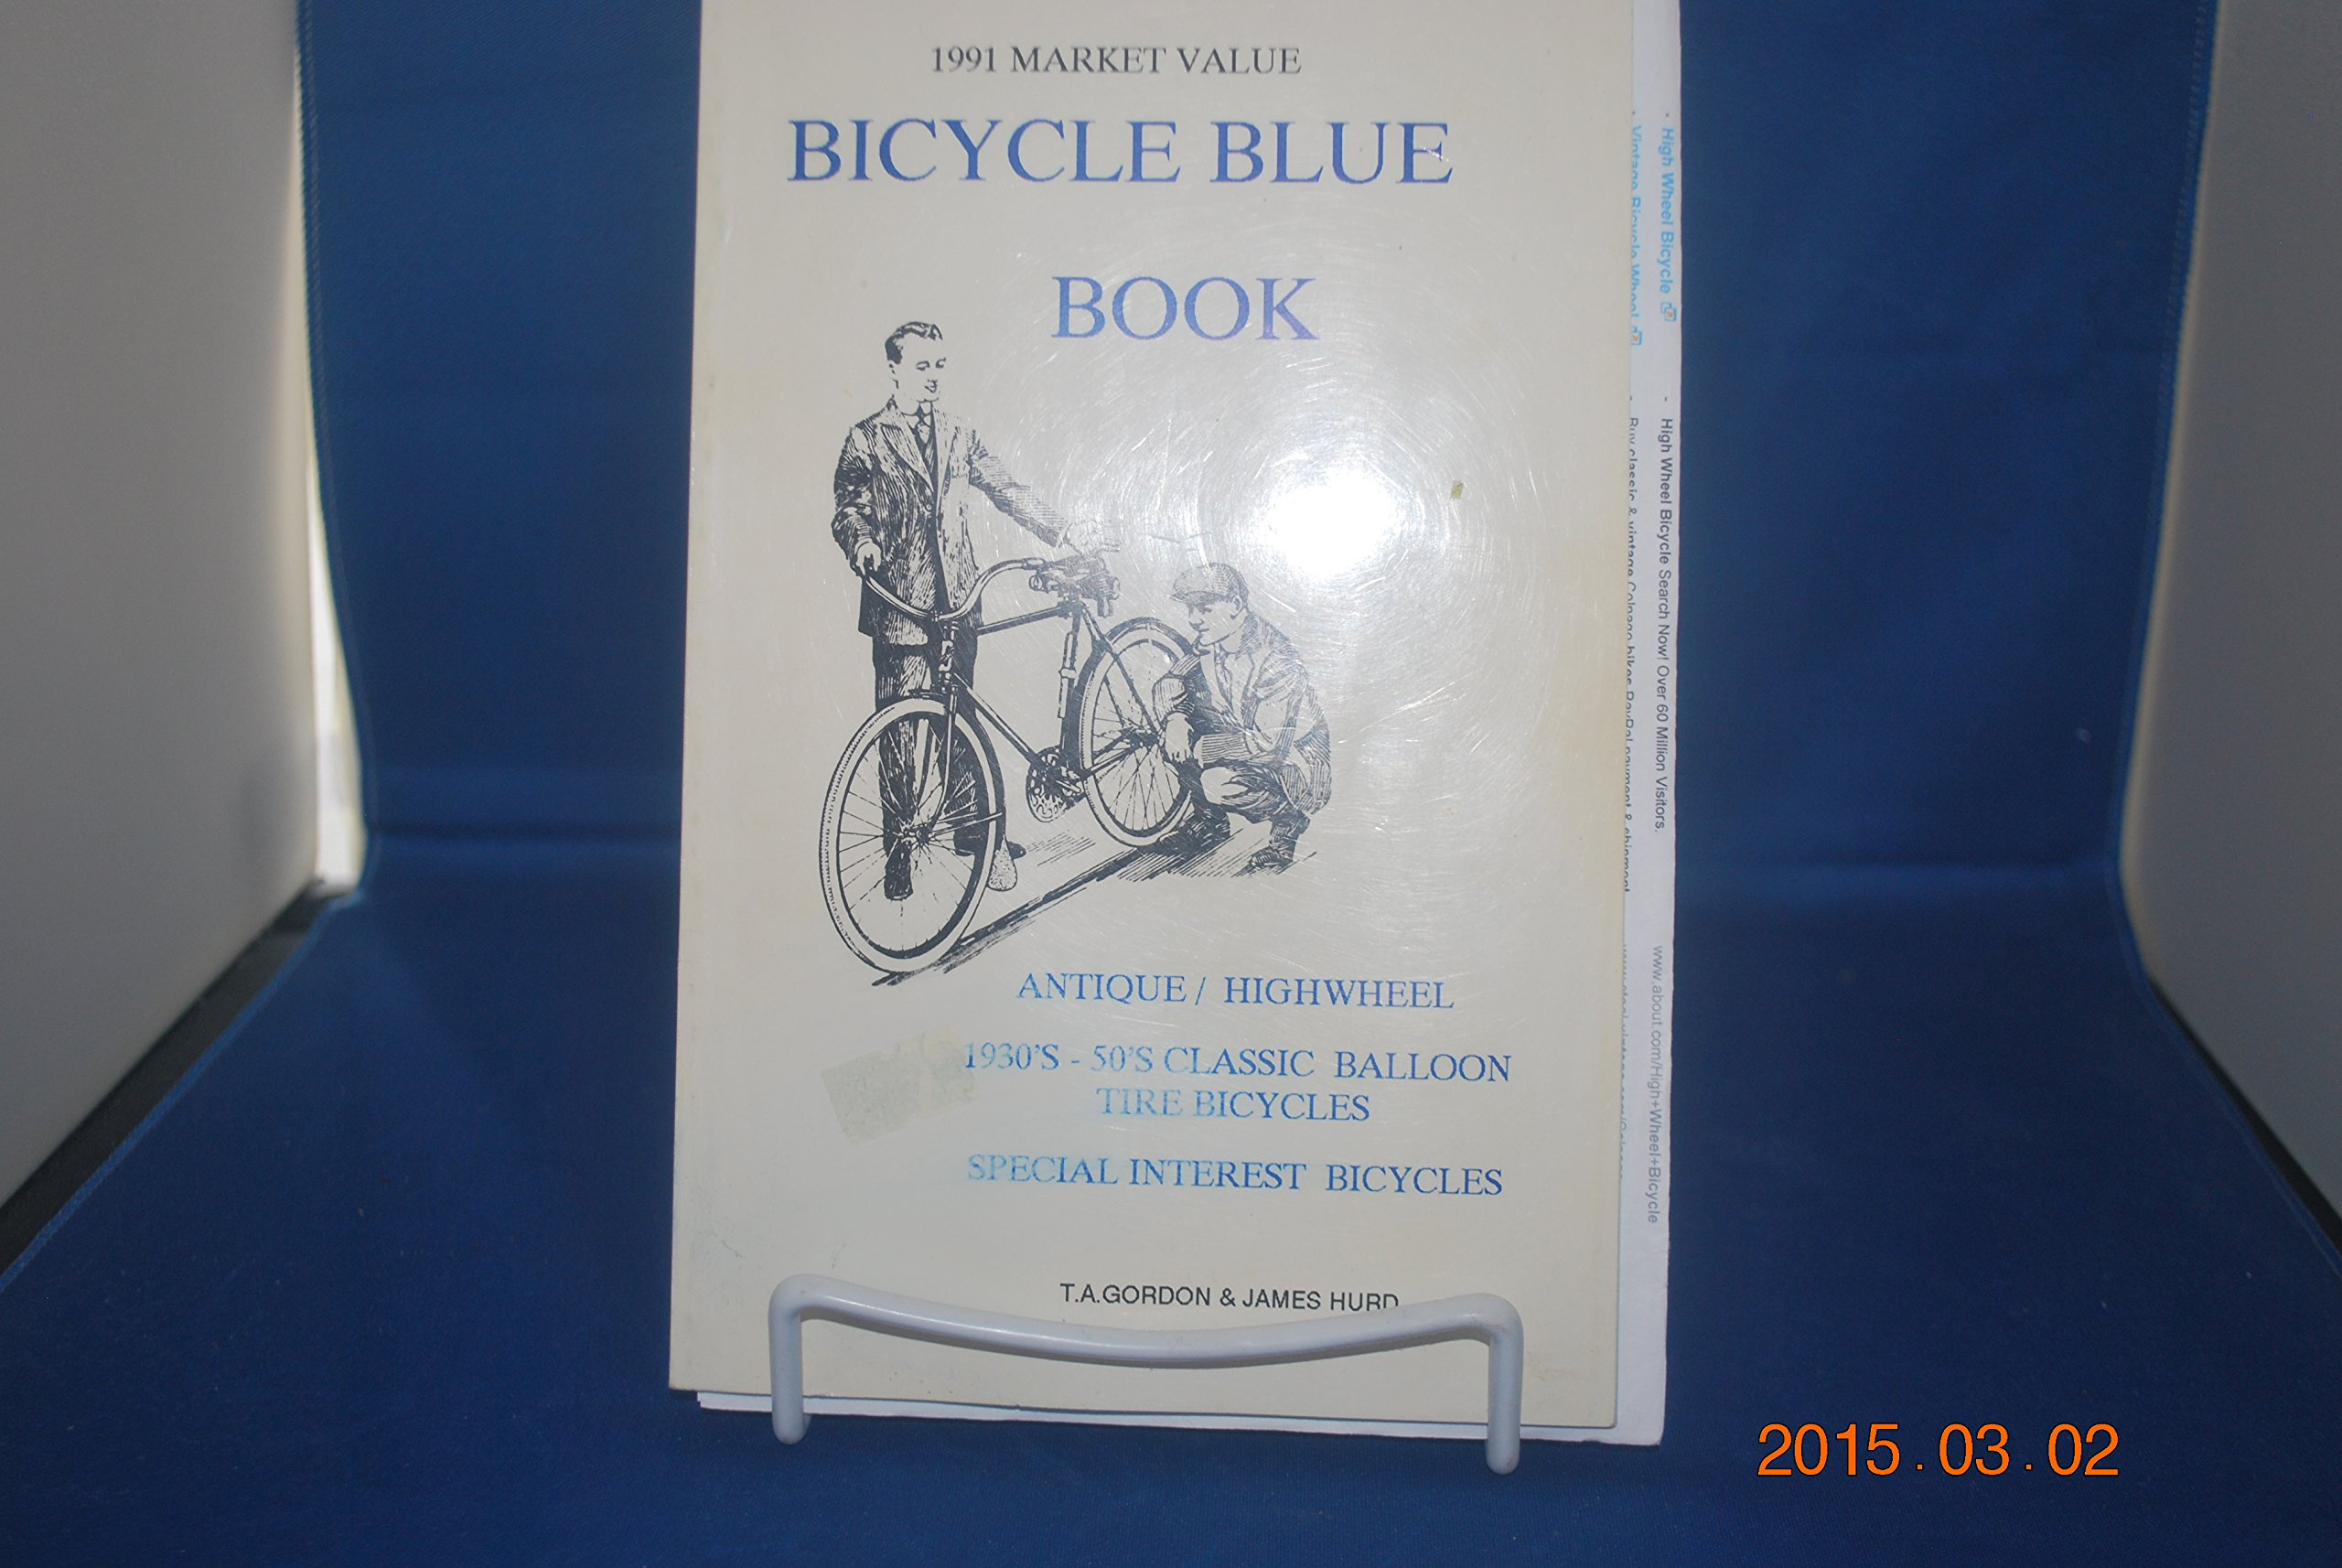 Bicycle Blue Book Antique Highwheel 1930 S 50 S Classic Balloon